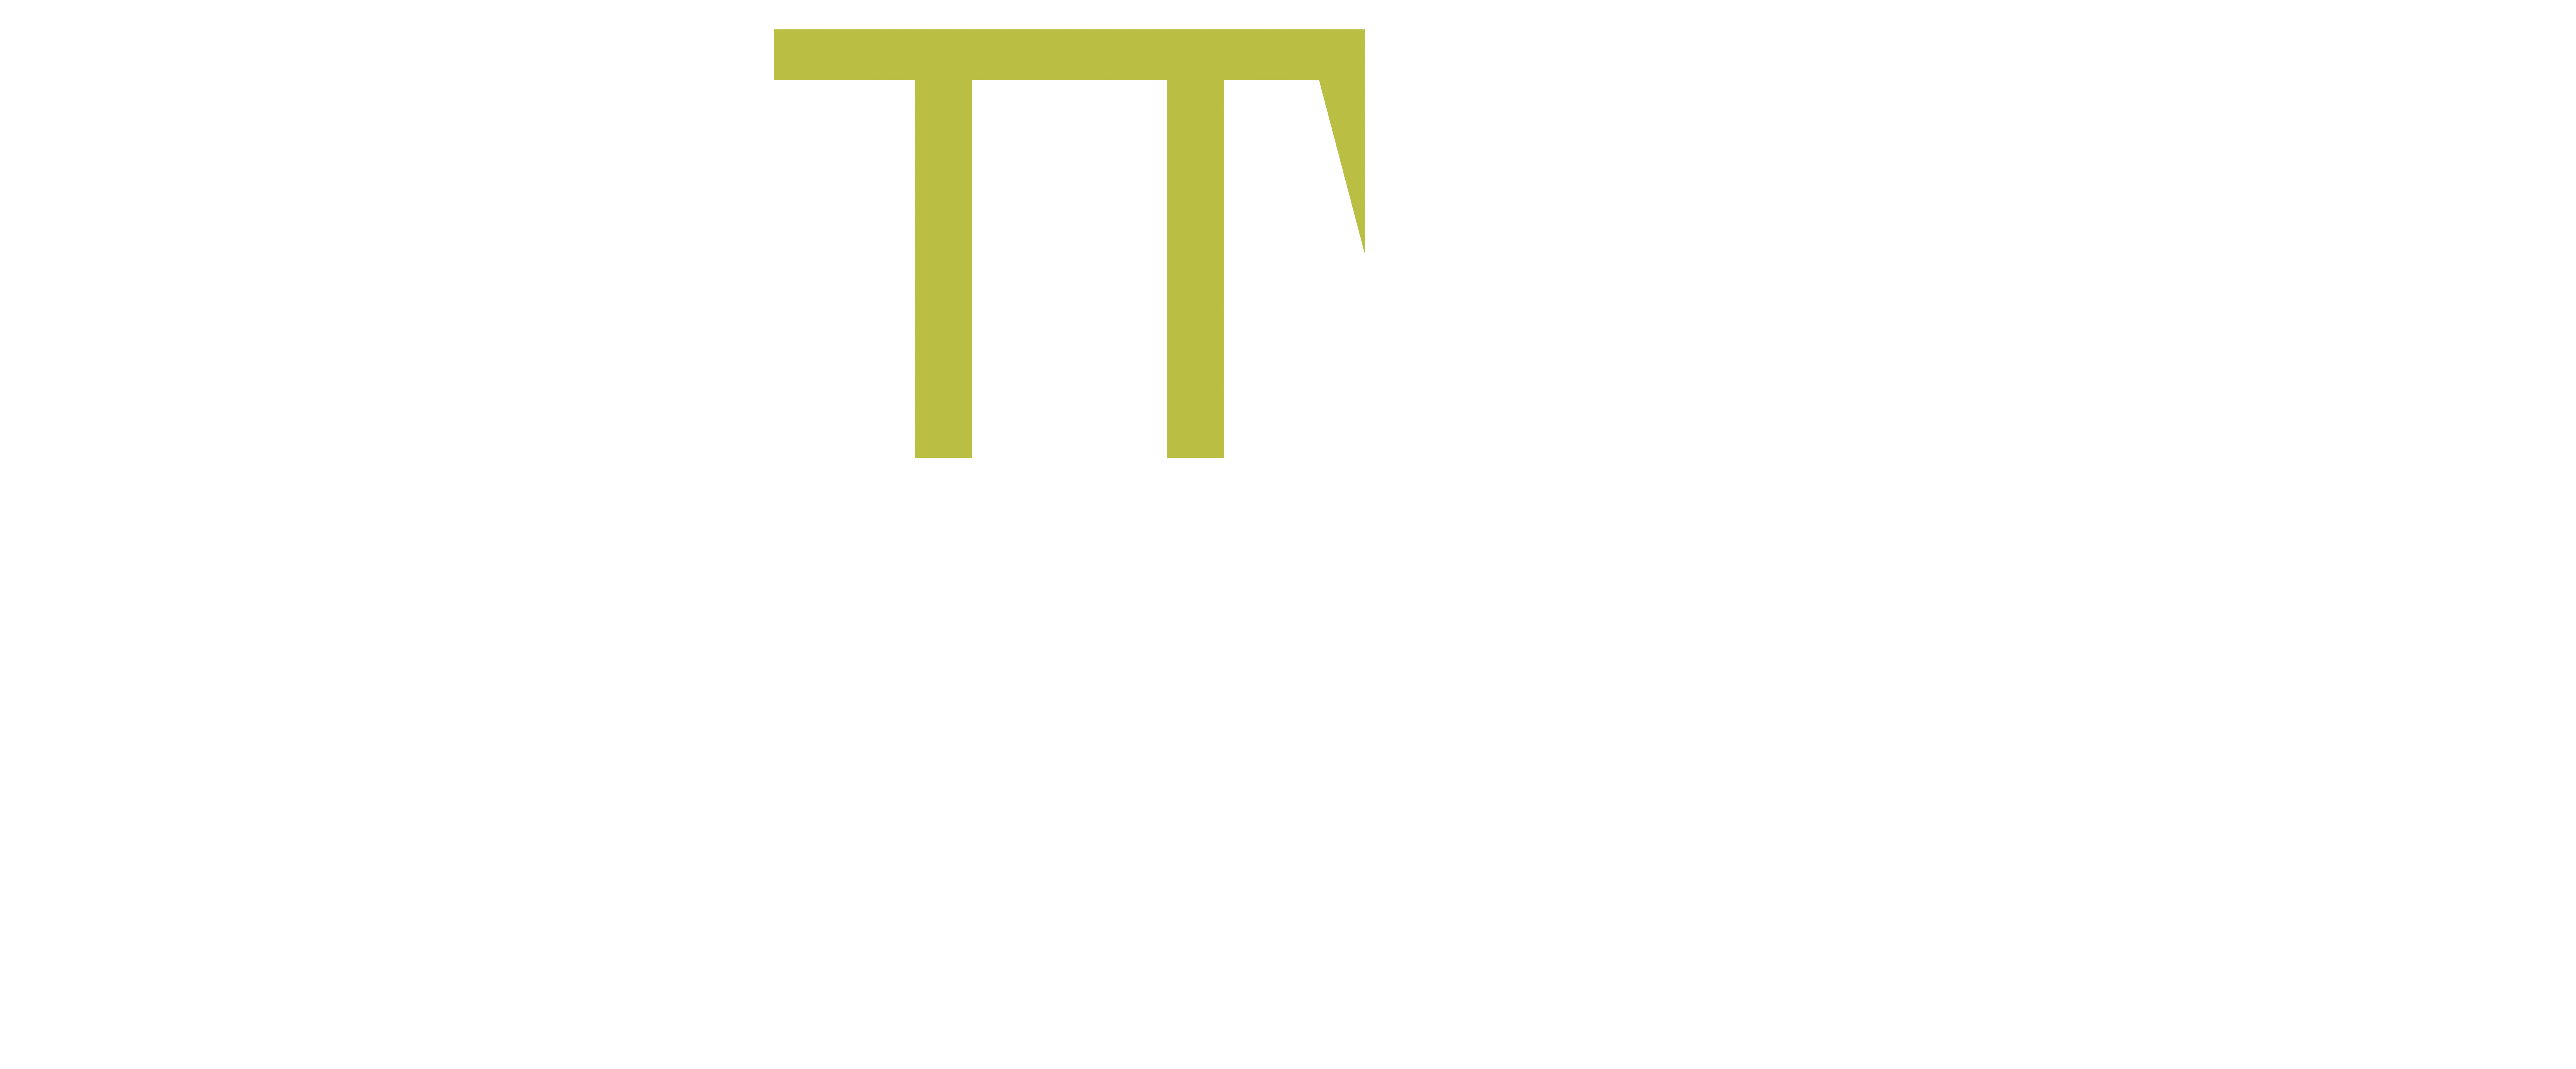 The Training Wizard